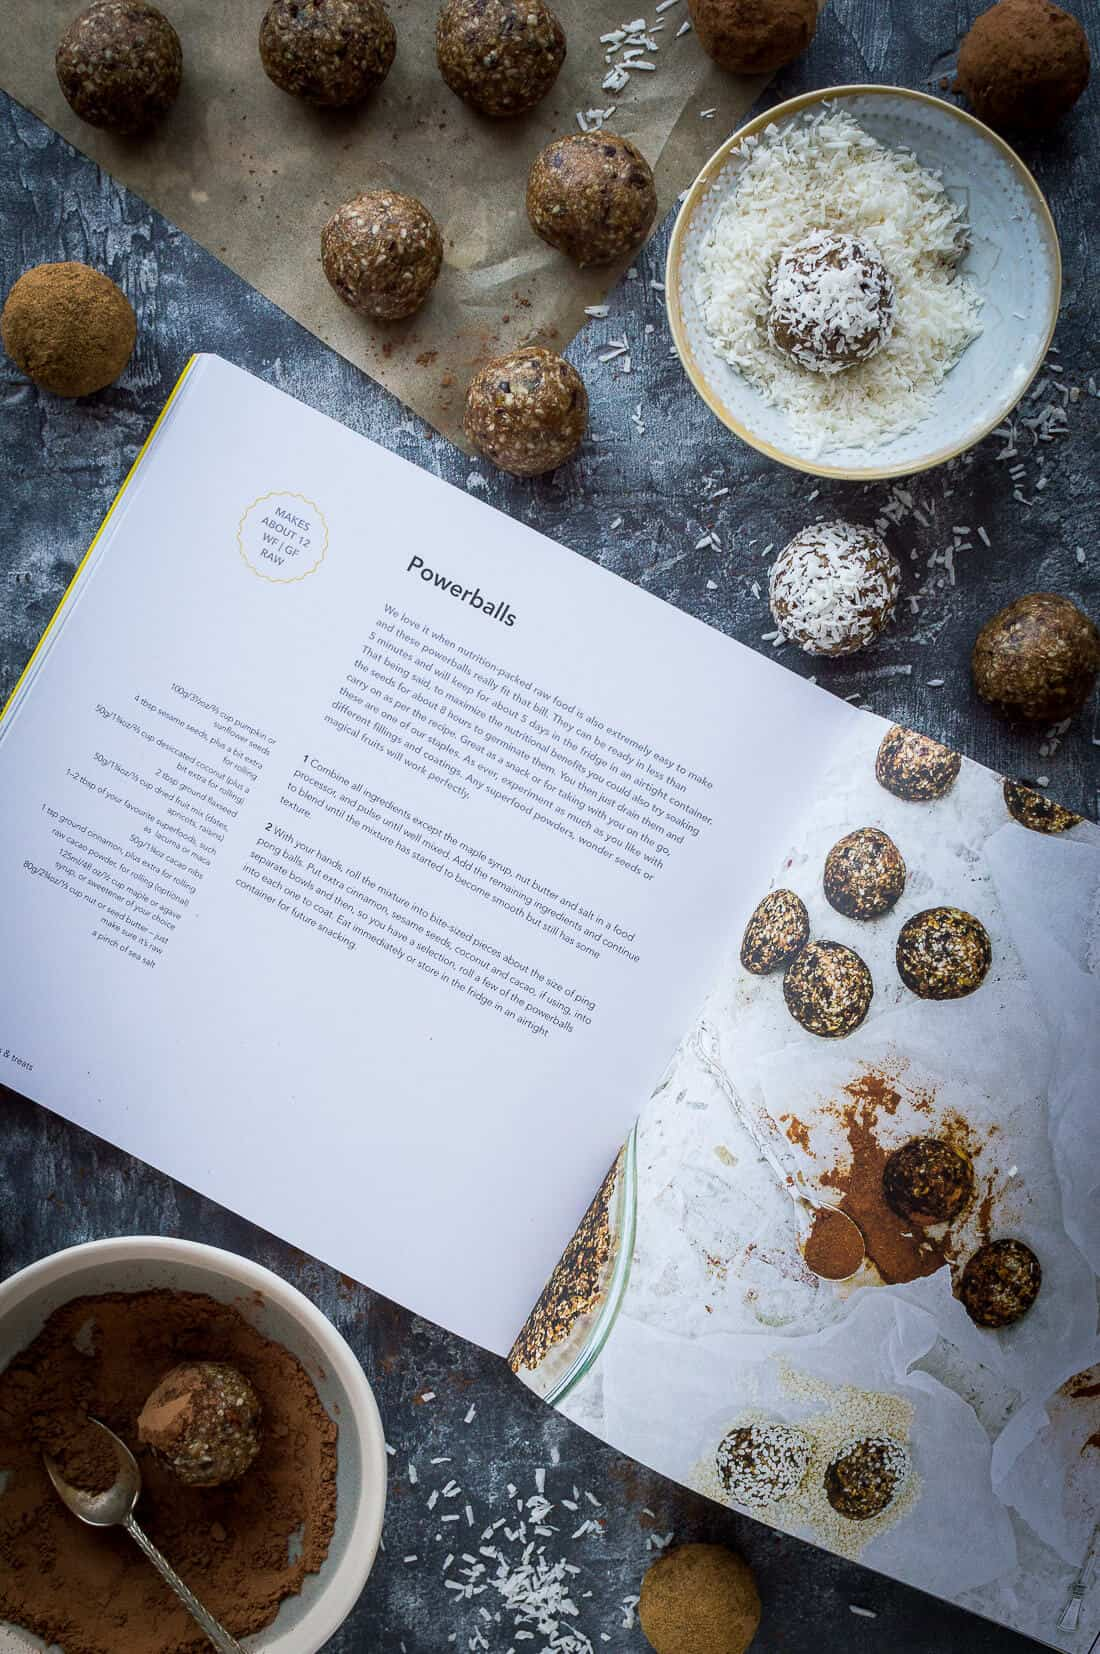 Powerballs recipe in fresh vegan kitchen cookbook